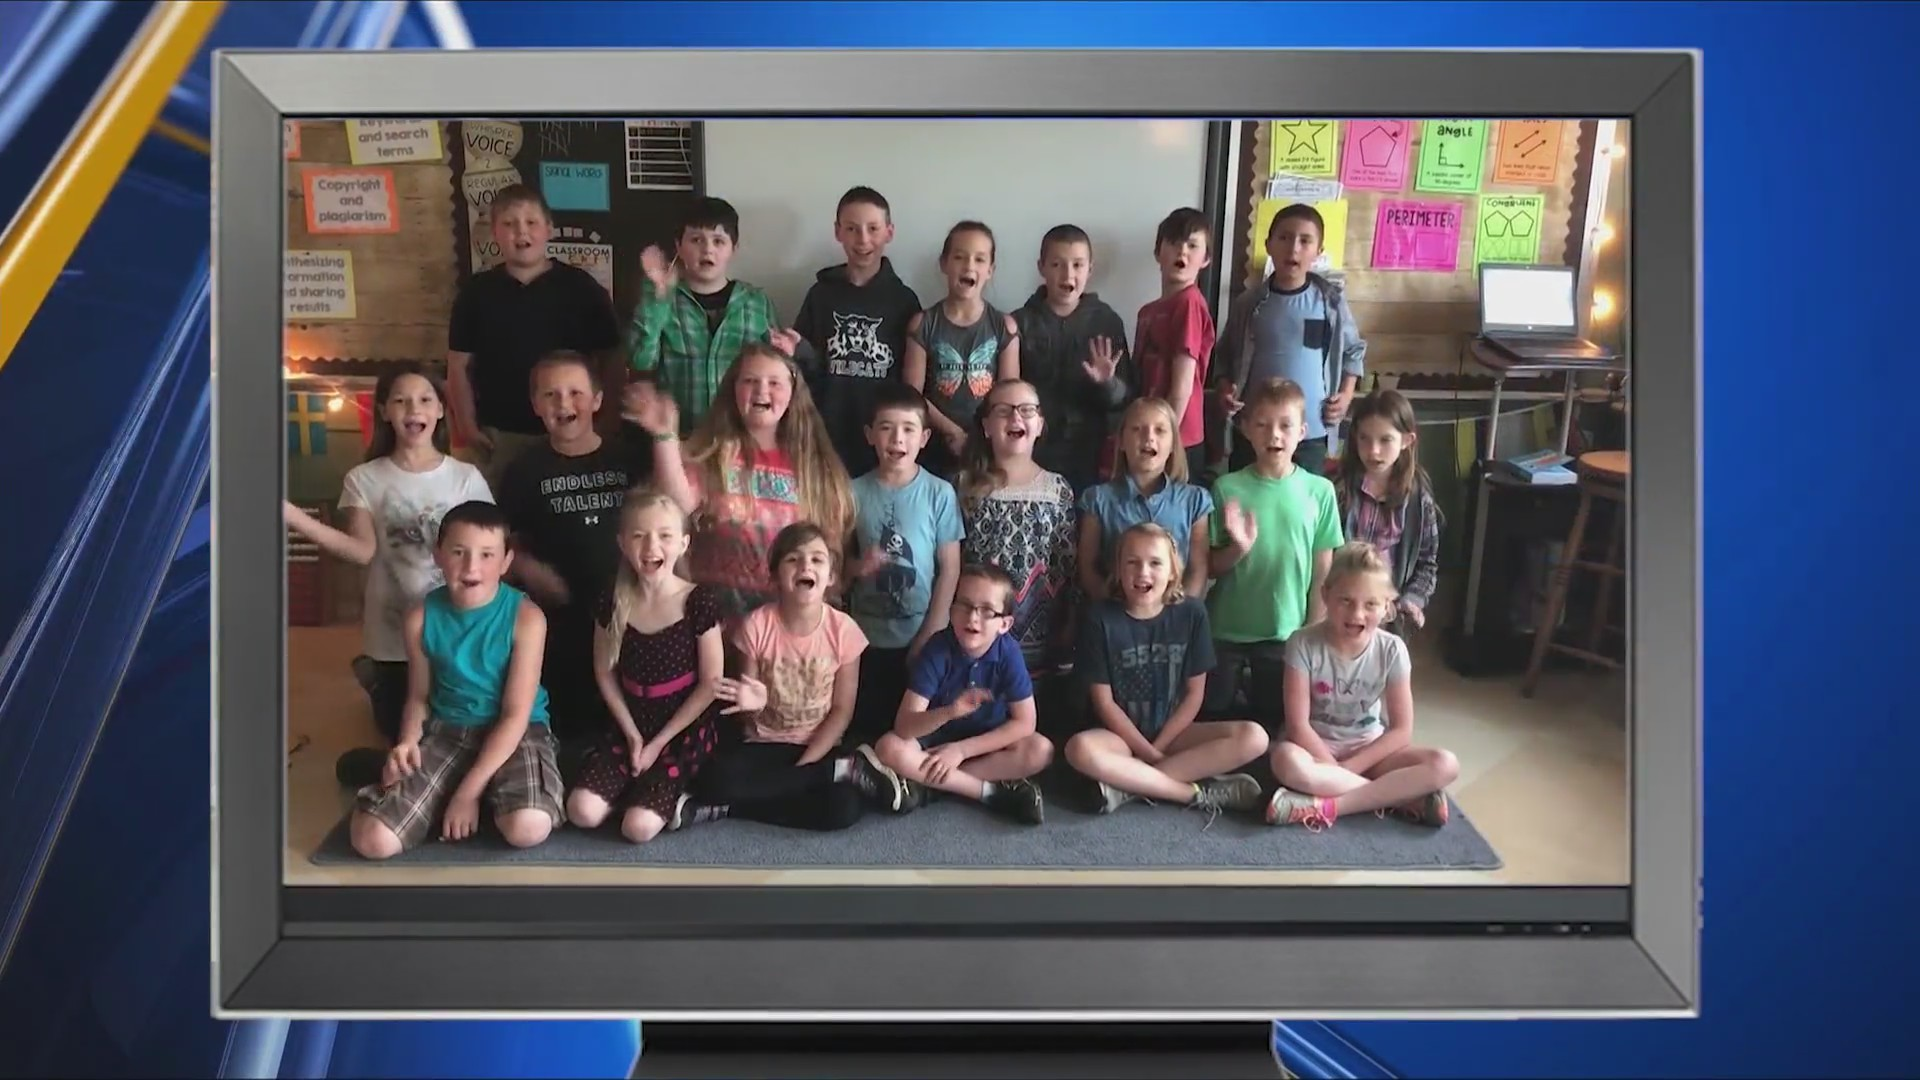 Weather Wisdom: Jasper-Troupsburg Elementary School